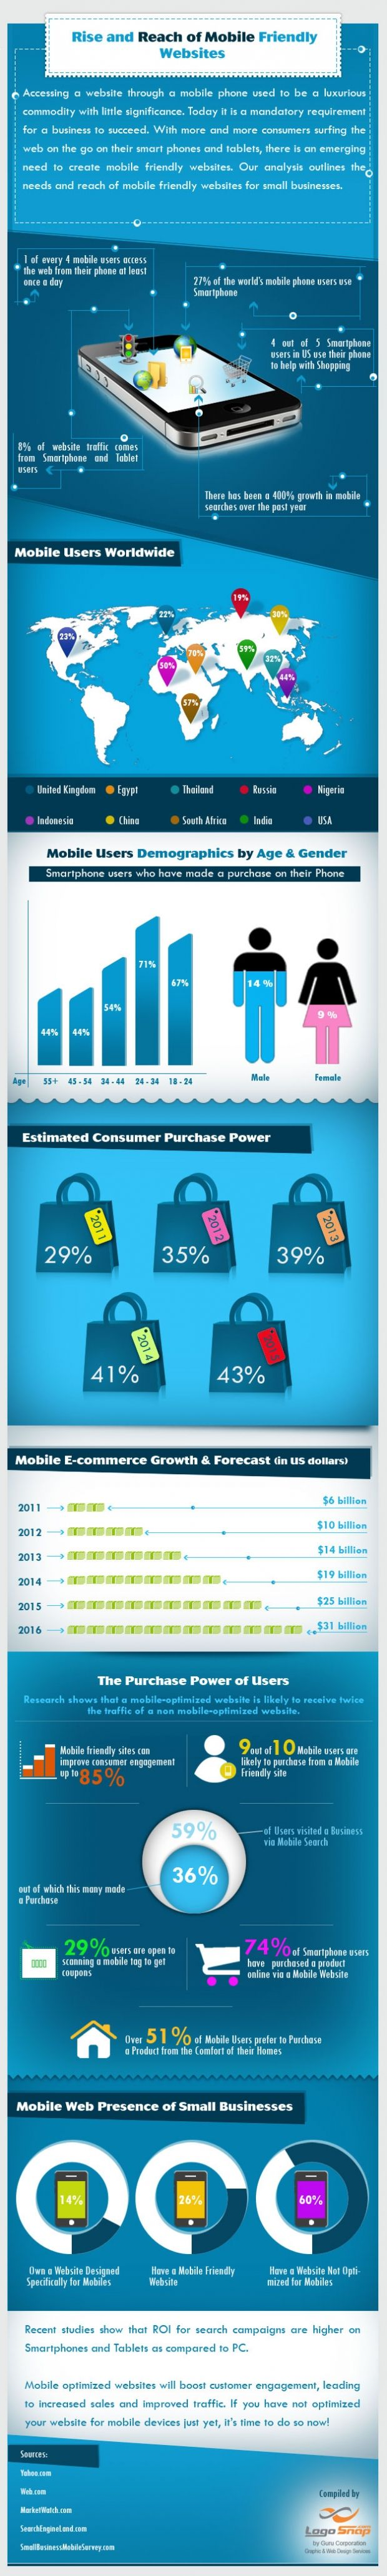 Why your business needs a mobile website TODAY! [INFOGRAPH] Google is now giving preference to mobile-optimized websites in search results. Having a mobile website is going to increase your customer engagement, website traffic and sales. Not having a mobile website is going to help your competition.